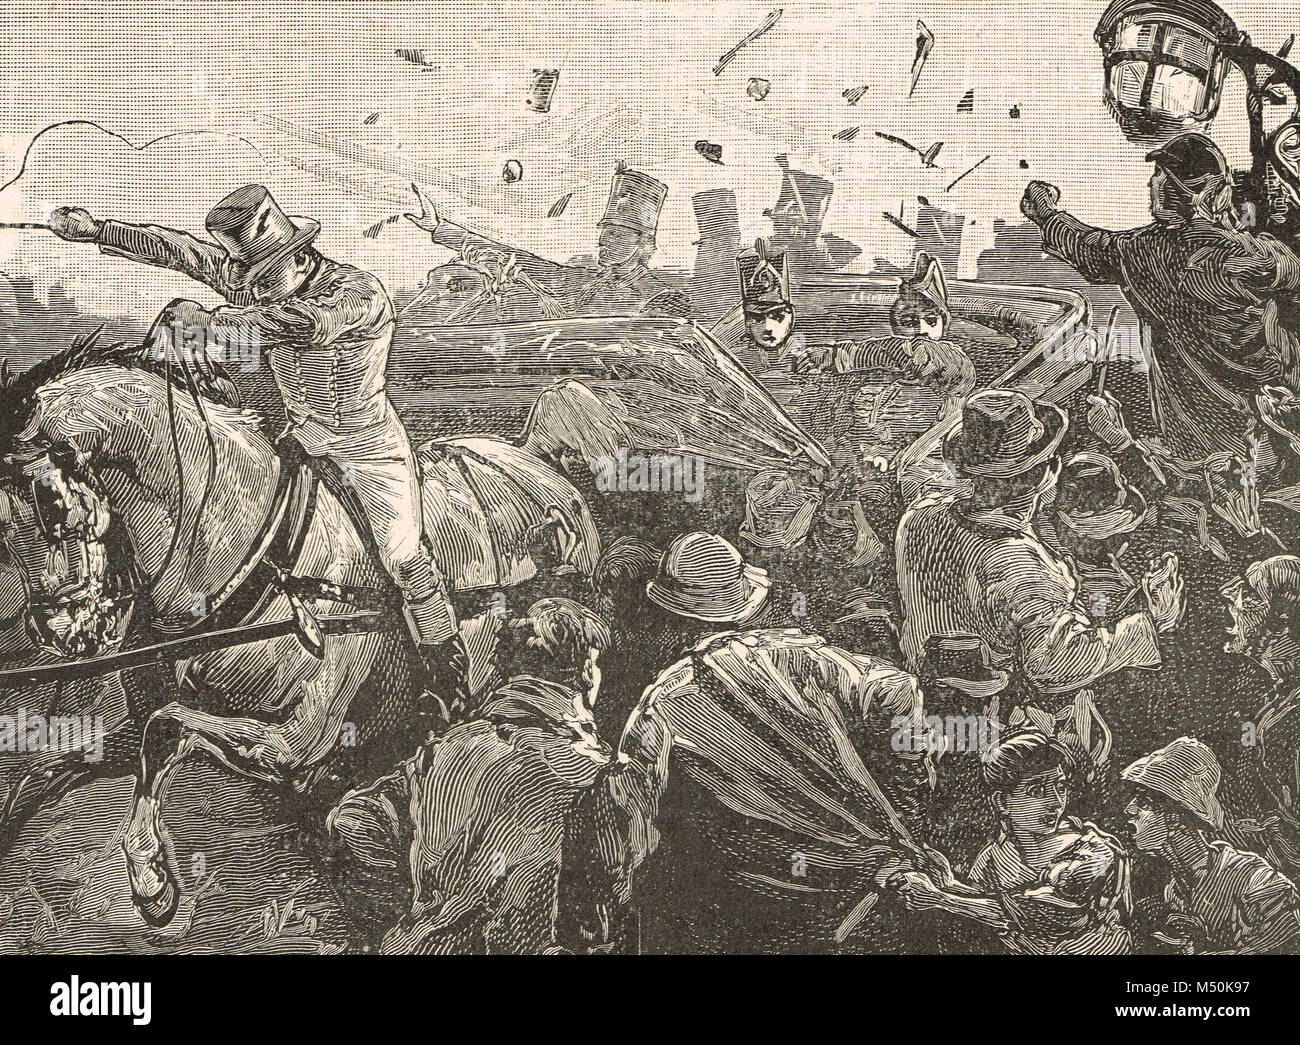 Riots in Montreal, Canada, Lord Elgin, Governor General of Canada, stoned by a mob, 25 April 1849 - Stock Image